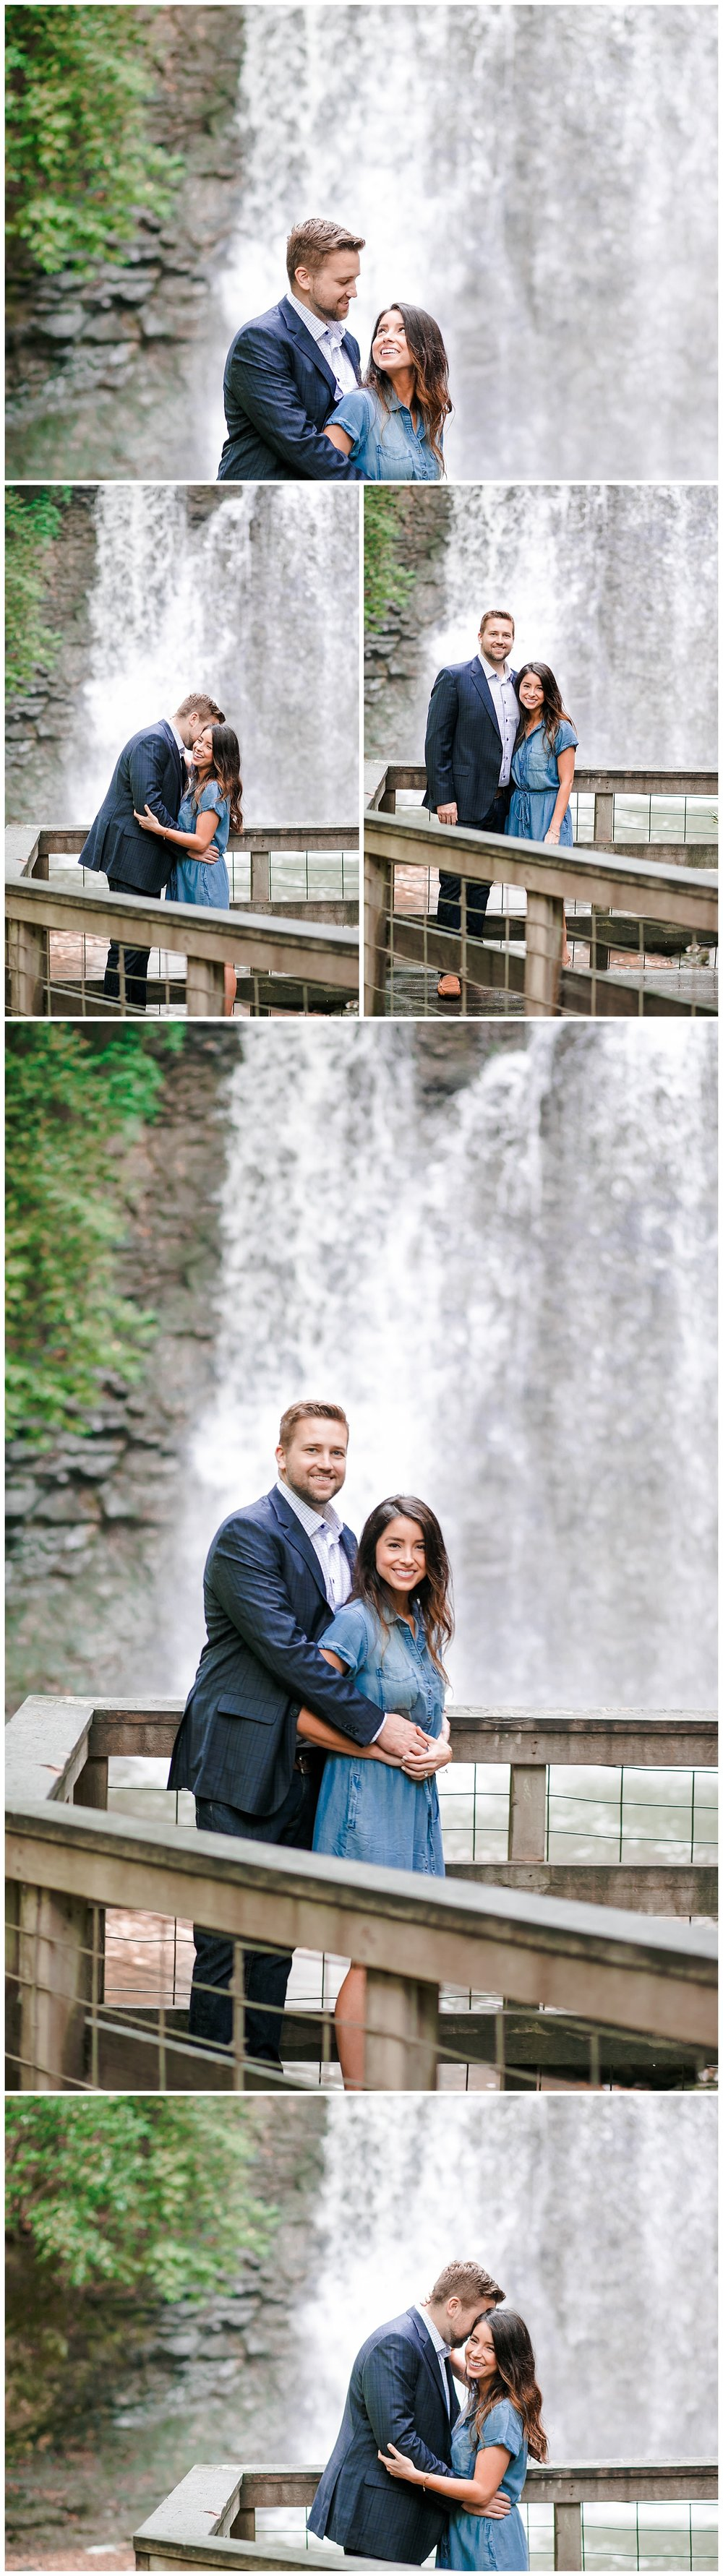 hayden-run-falls-engagement-inphinite-photo